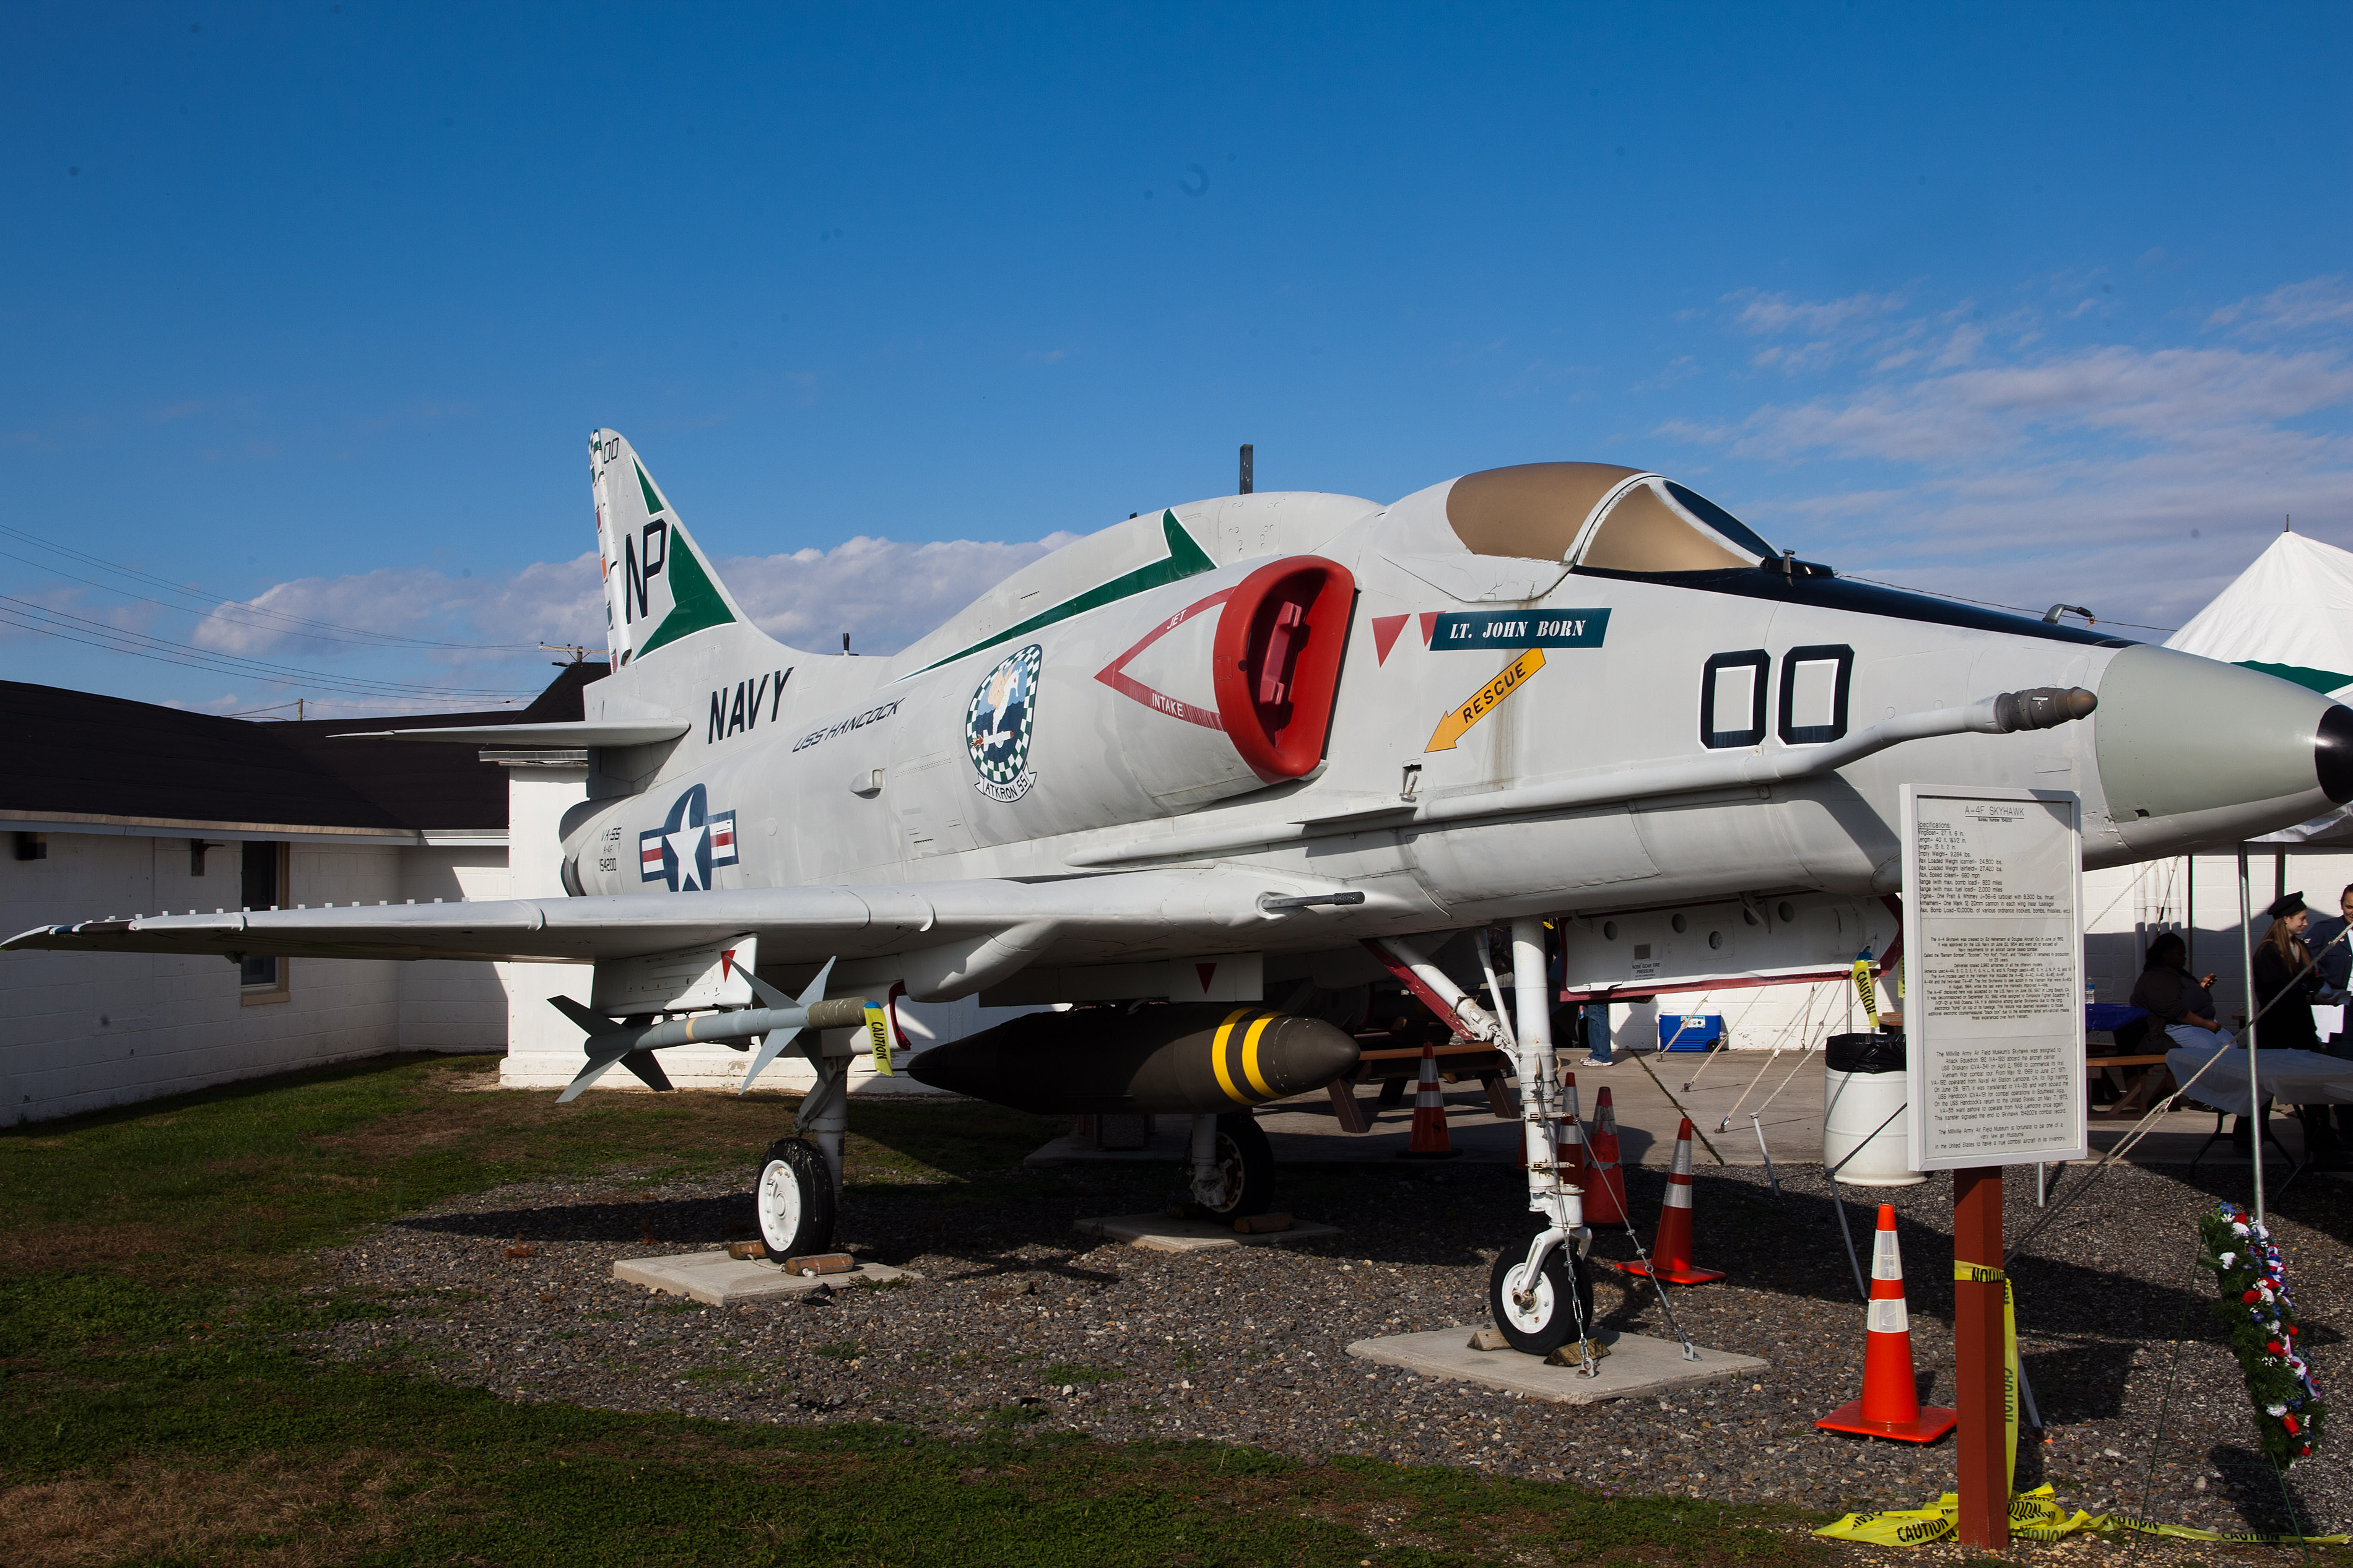 The A-4F Skyhawk fighter jet